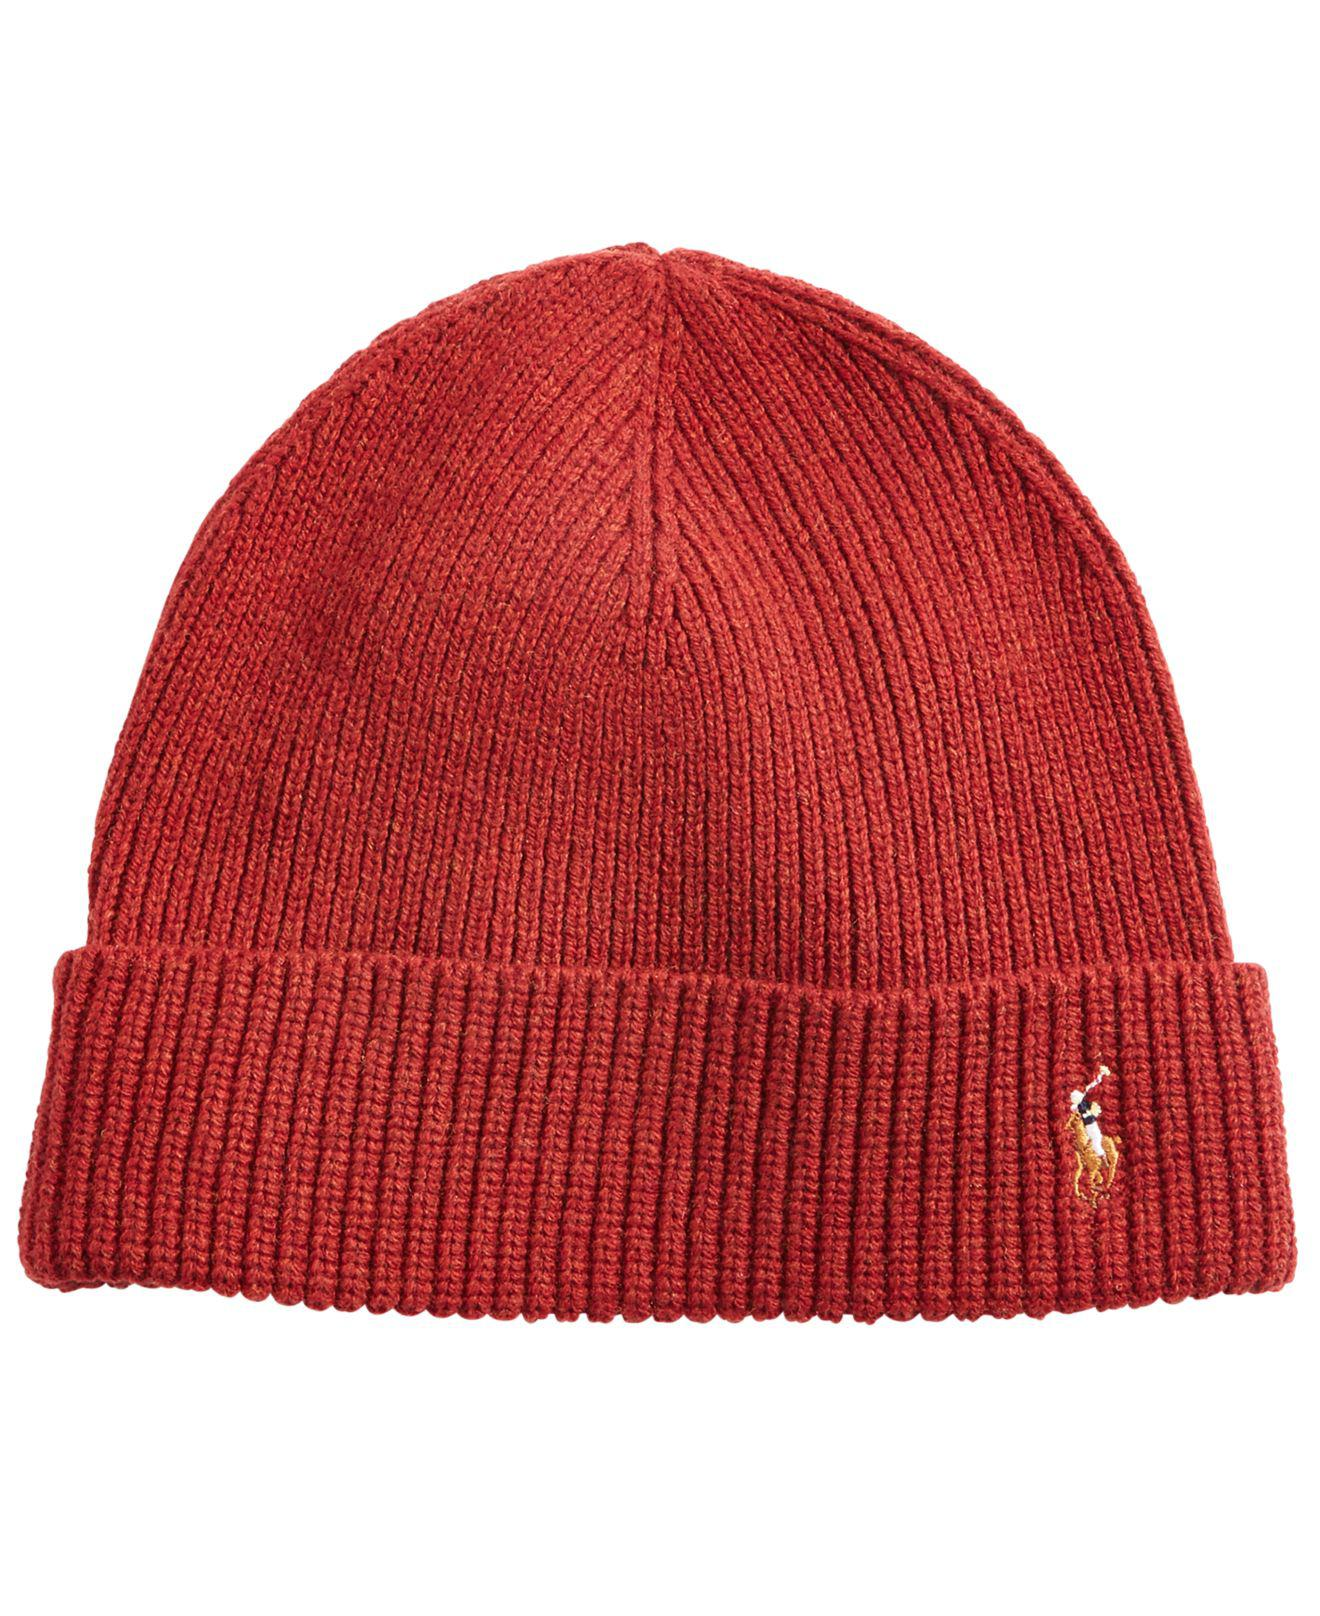 15341bcdc Polo Ralph Lauren Red Signature Merino Cuffed Beanie for men